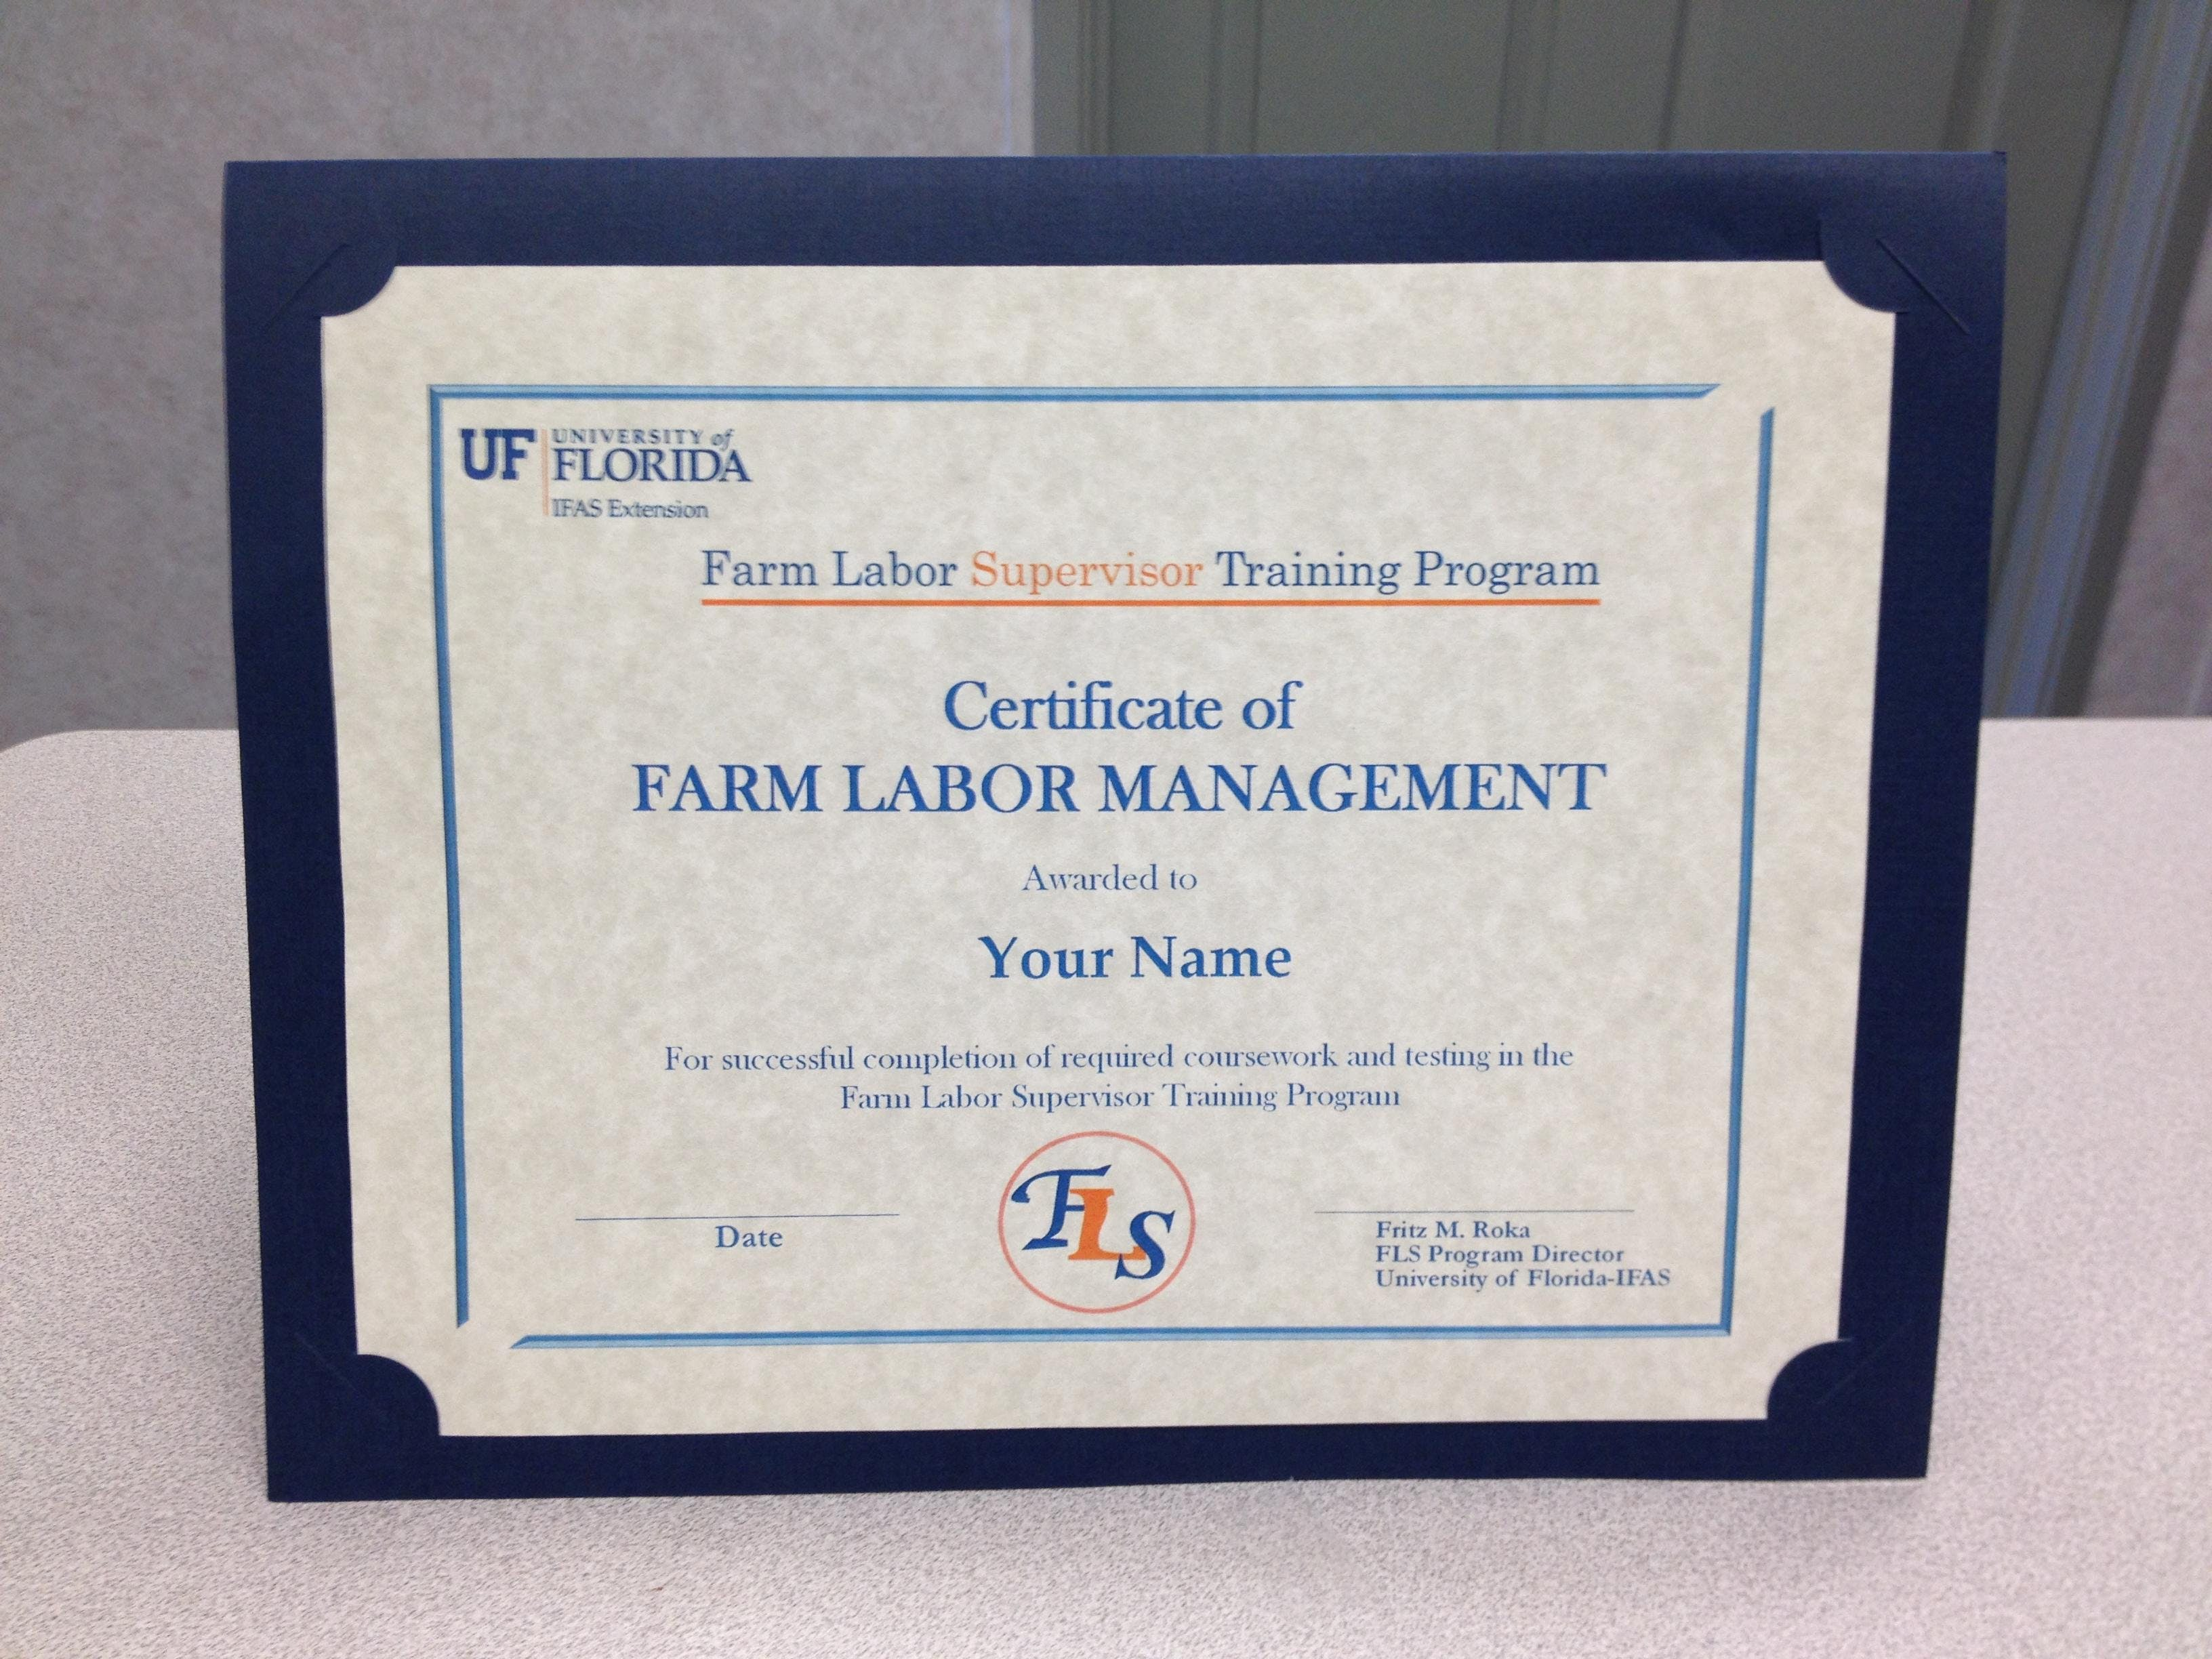 Ufifas Farm Labor Supervisor Training Balm October 23rd And 24th